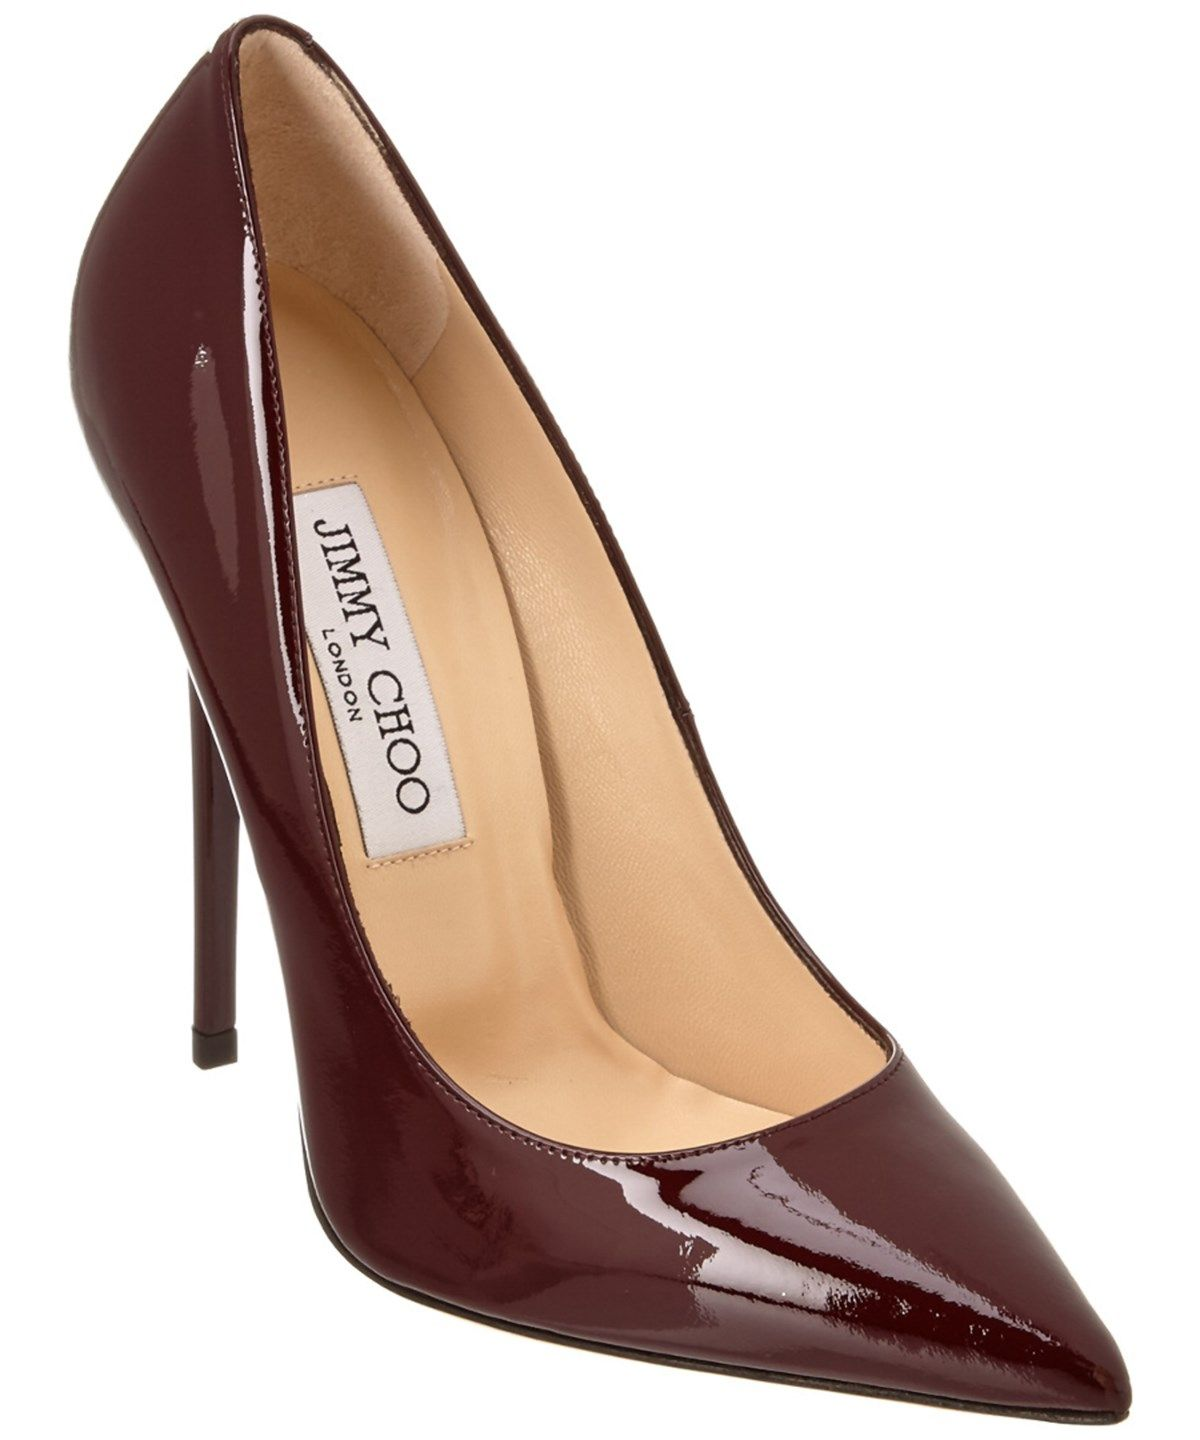 6c38befb8fc2 JIMMY CHOO JIMMY CHOO ANOUK 120 PATENT POINTY-TOE PUMP .  jimmychoo  shoes   pumps   high heels